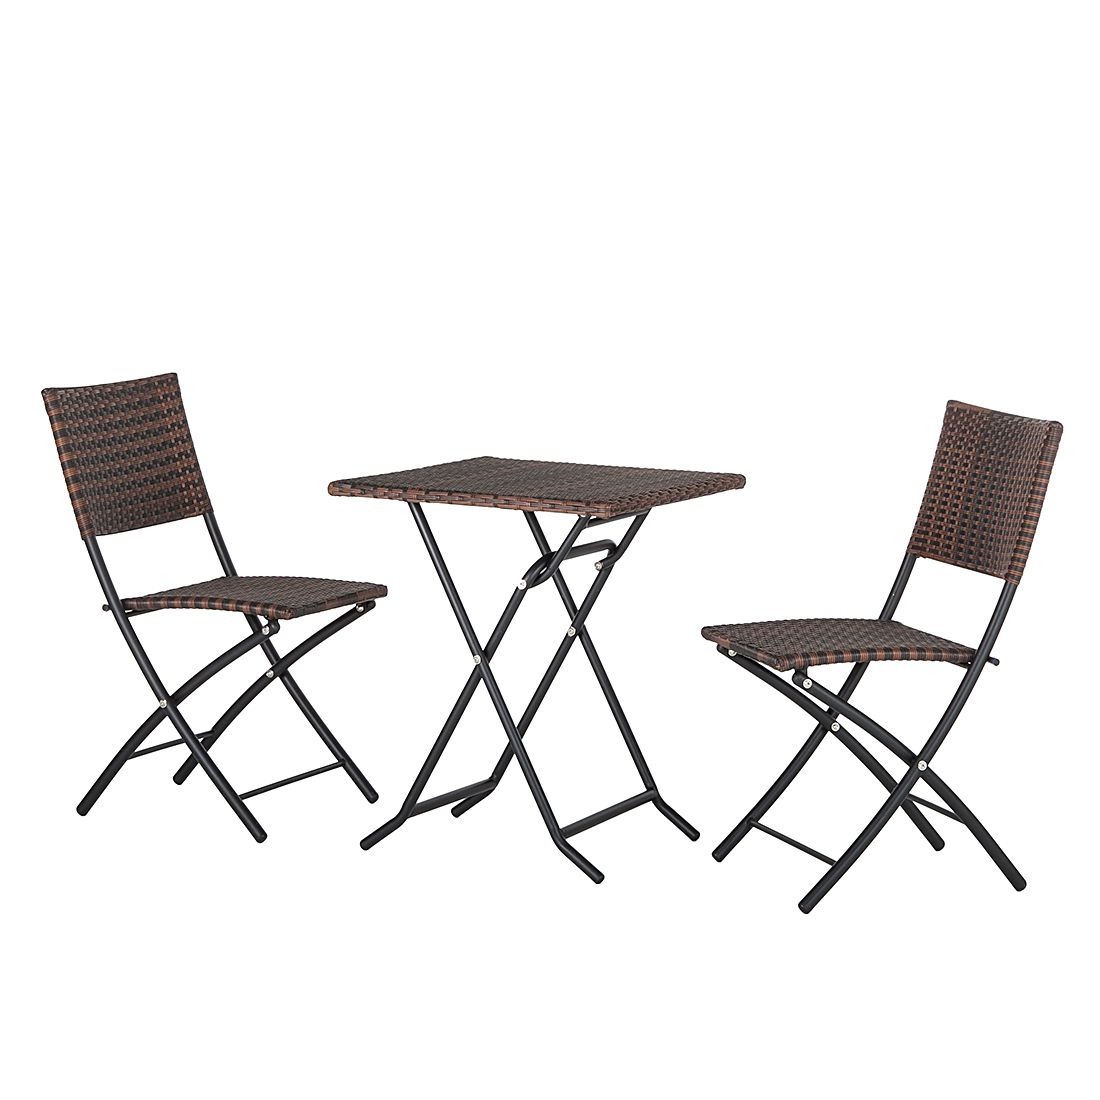 balkonset twosome 3 teilig polyrattan braun garden guerilla g nstig online kaufen. Black Bedroom Furniture Sets. Home Design Ideas